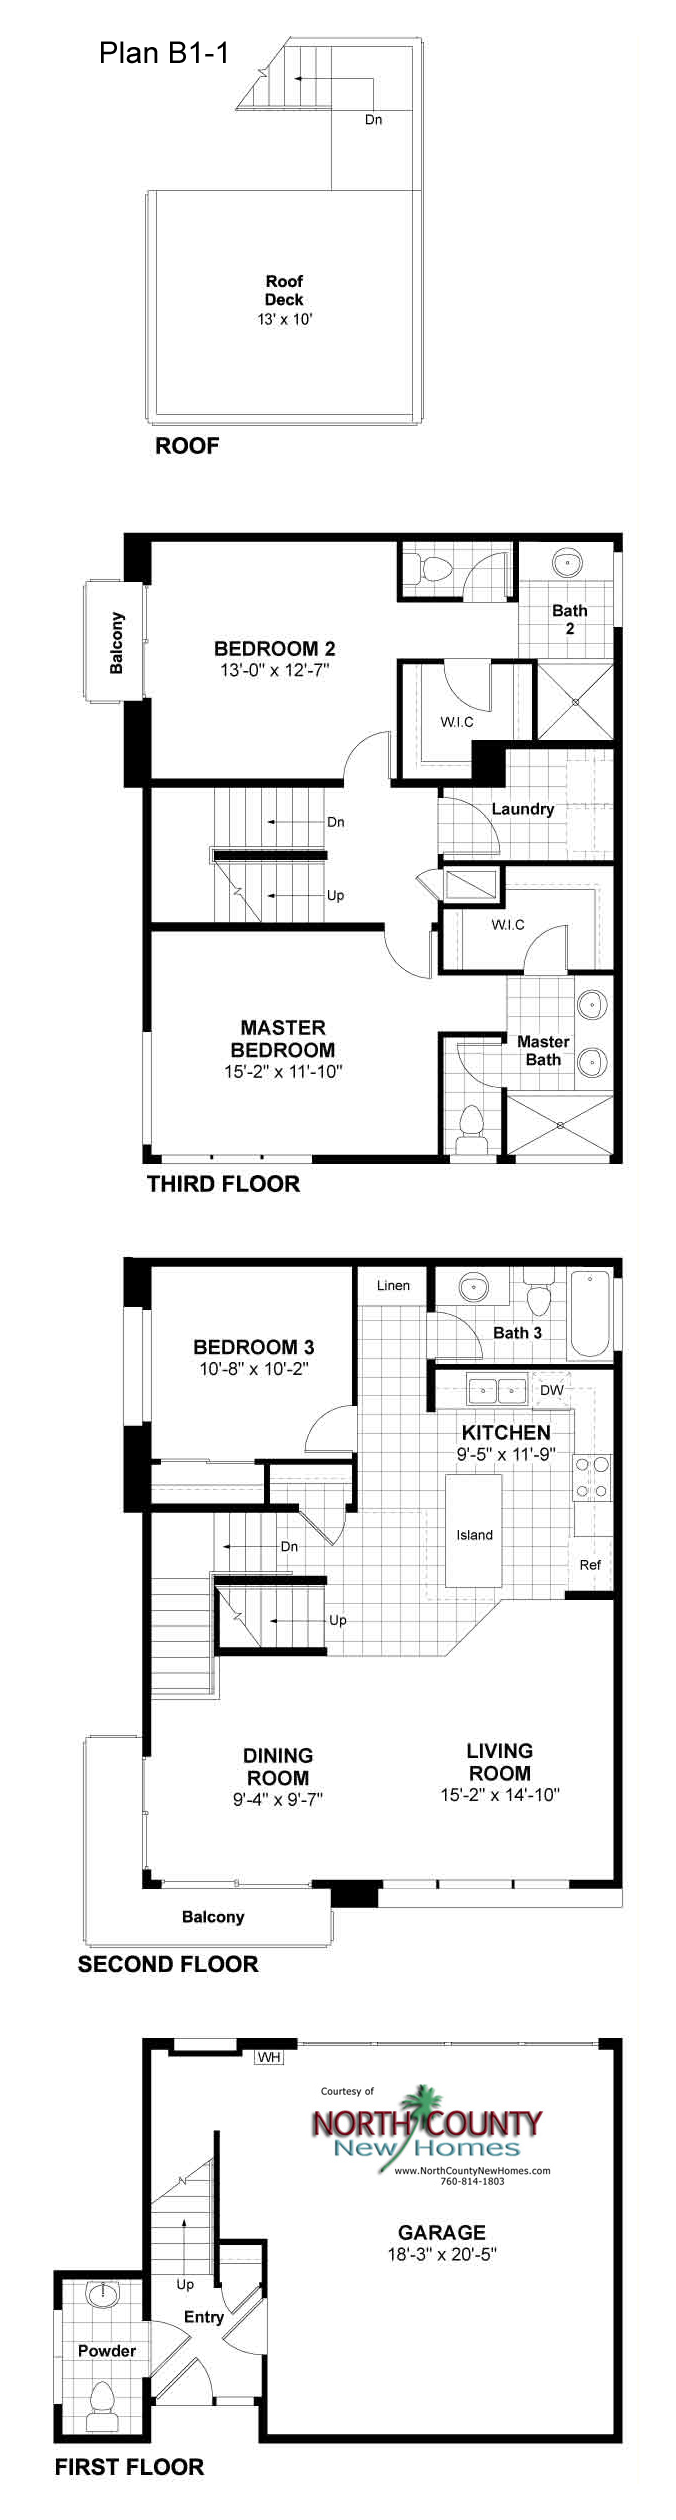 15 new townhomes in coastal oceanside new construction for Oceanside house plans